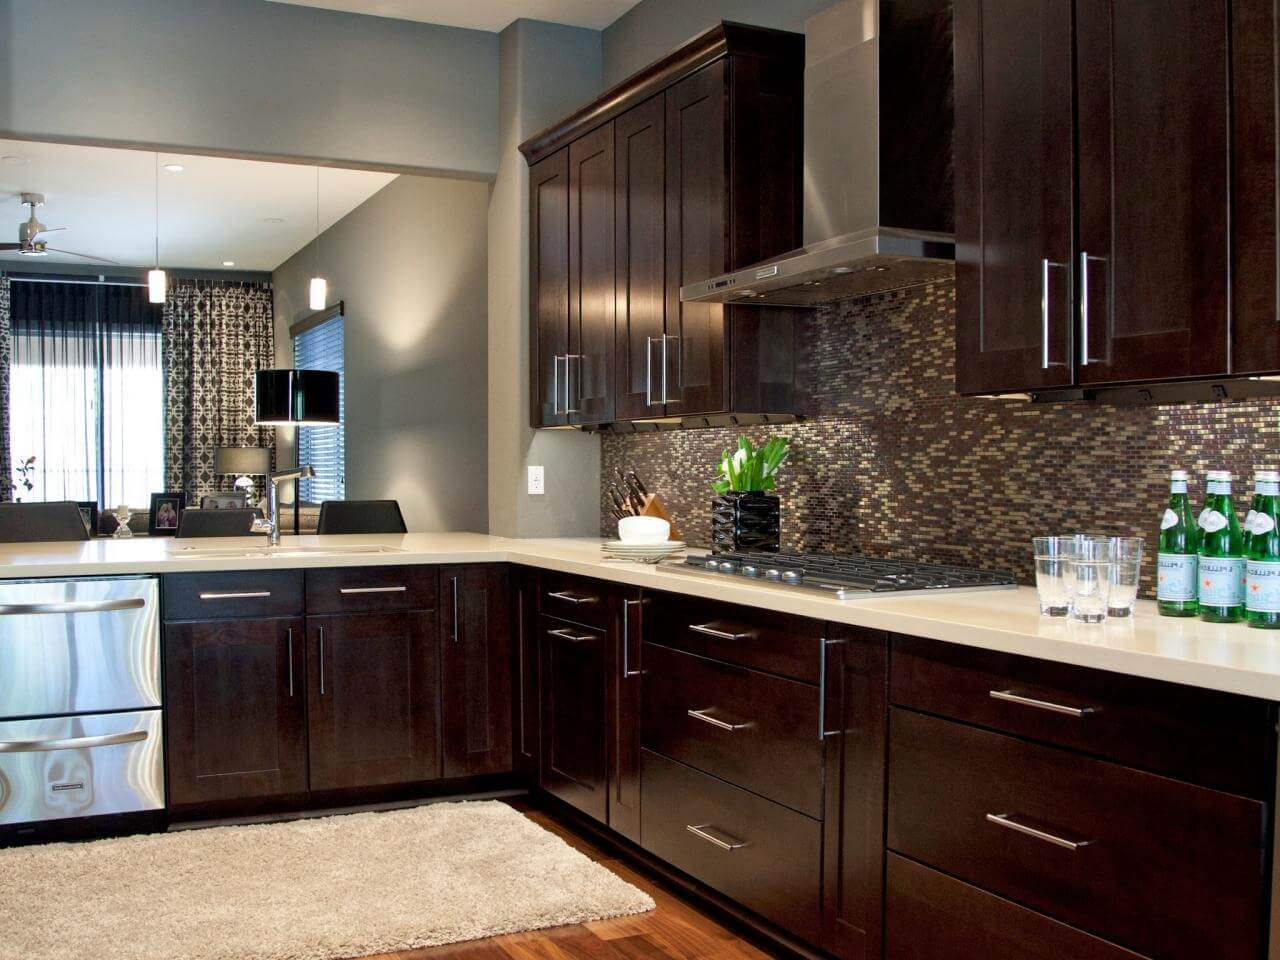 rta kitchen cabinets why you should use them in your kitchen rta kitchen cabinets RTA Kitchen Cabinets